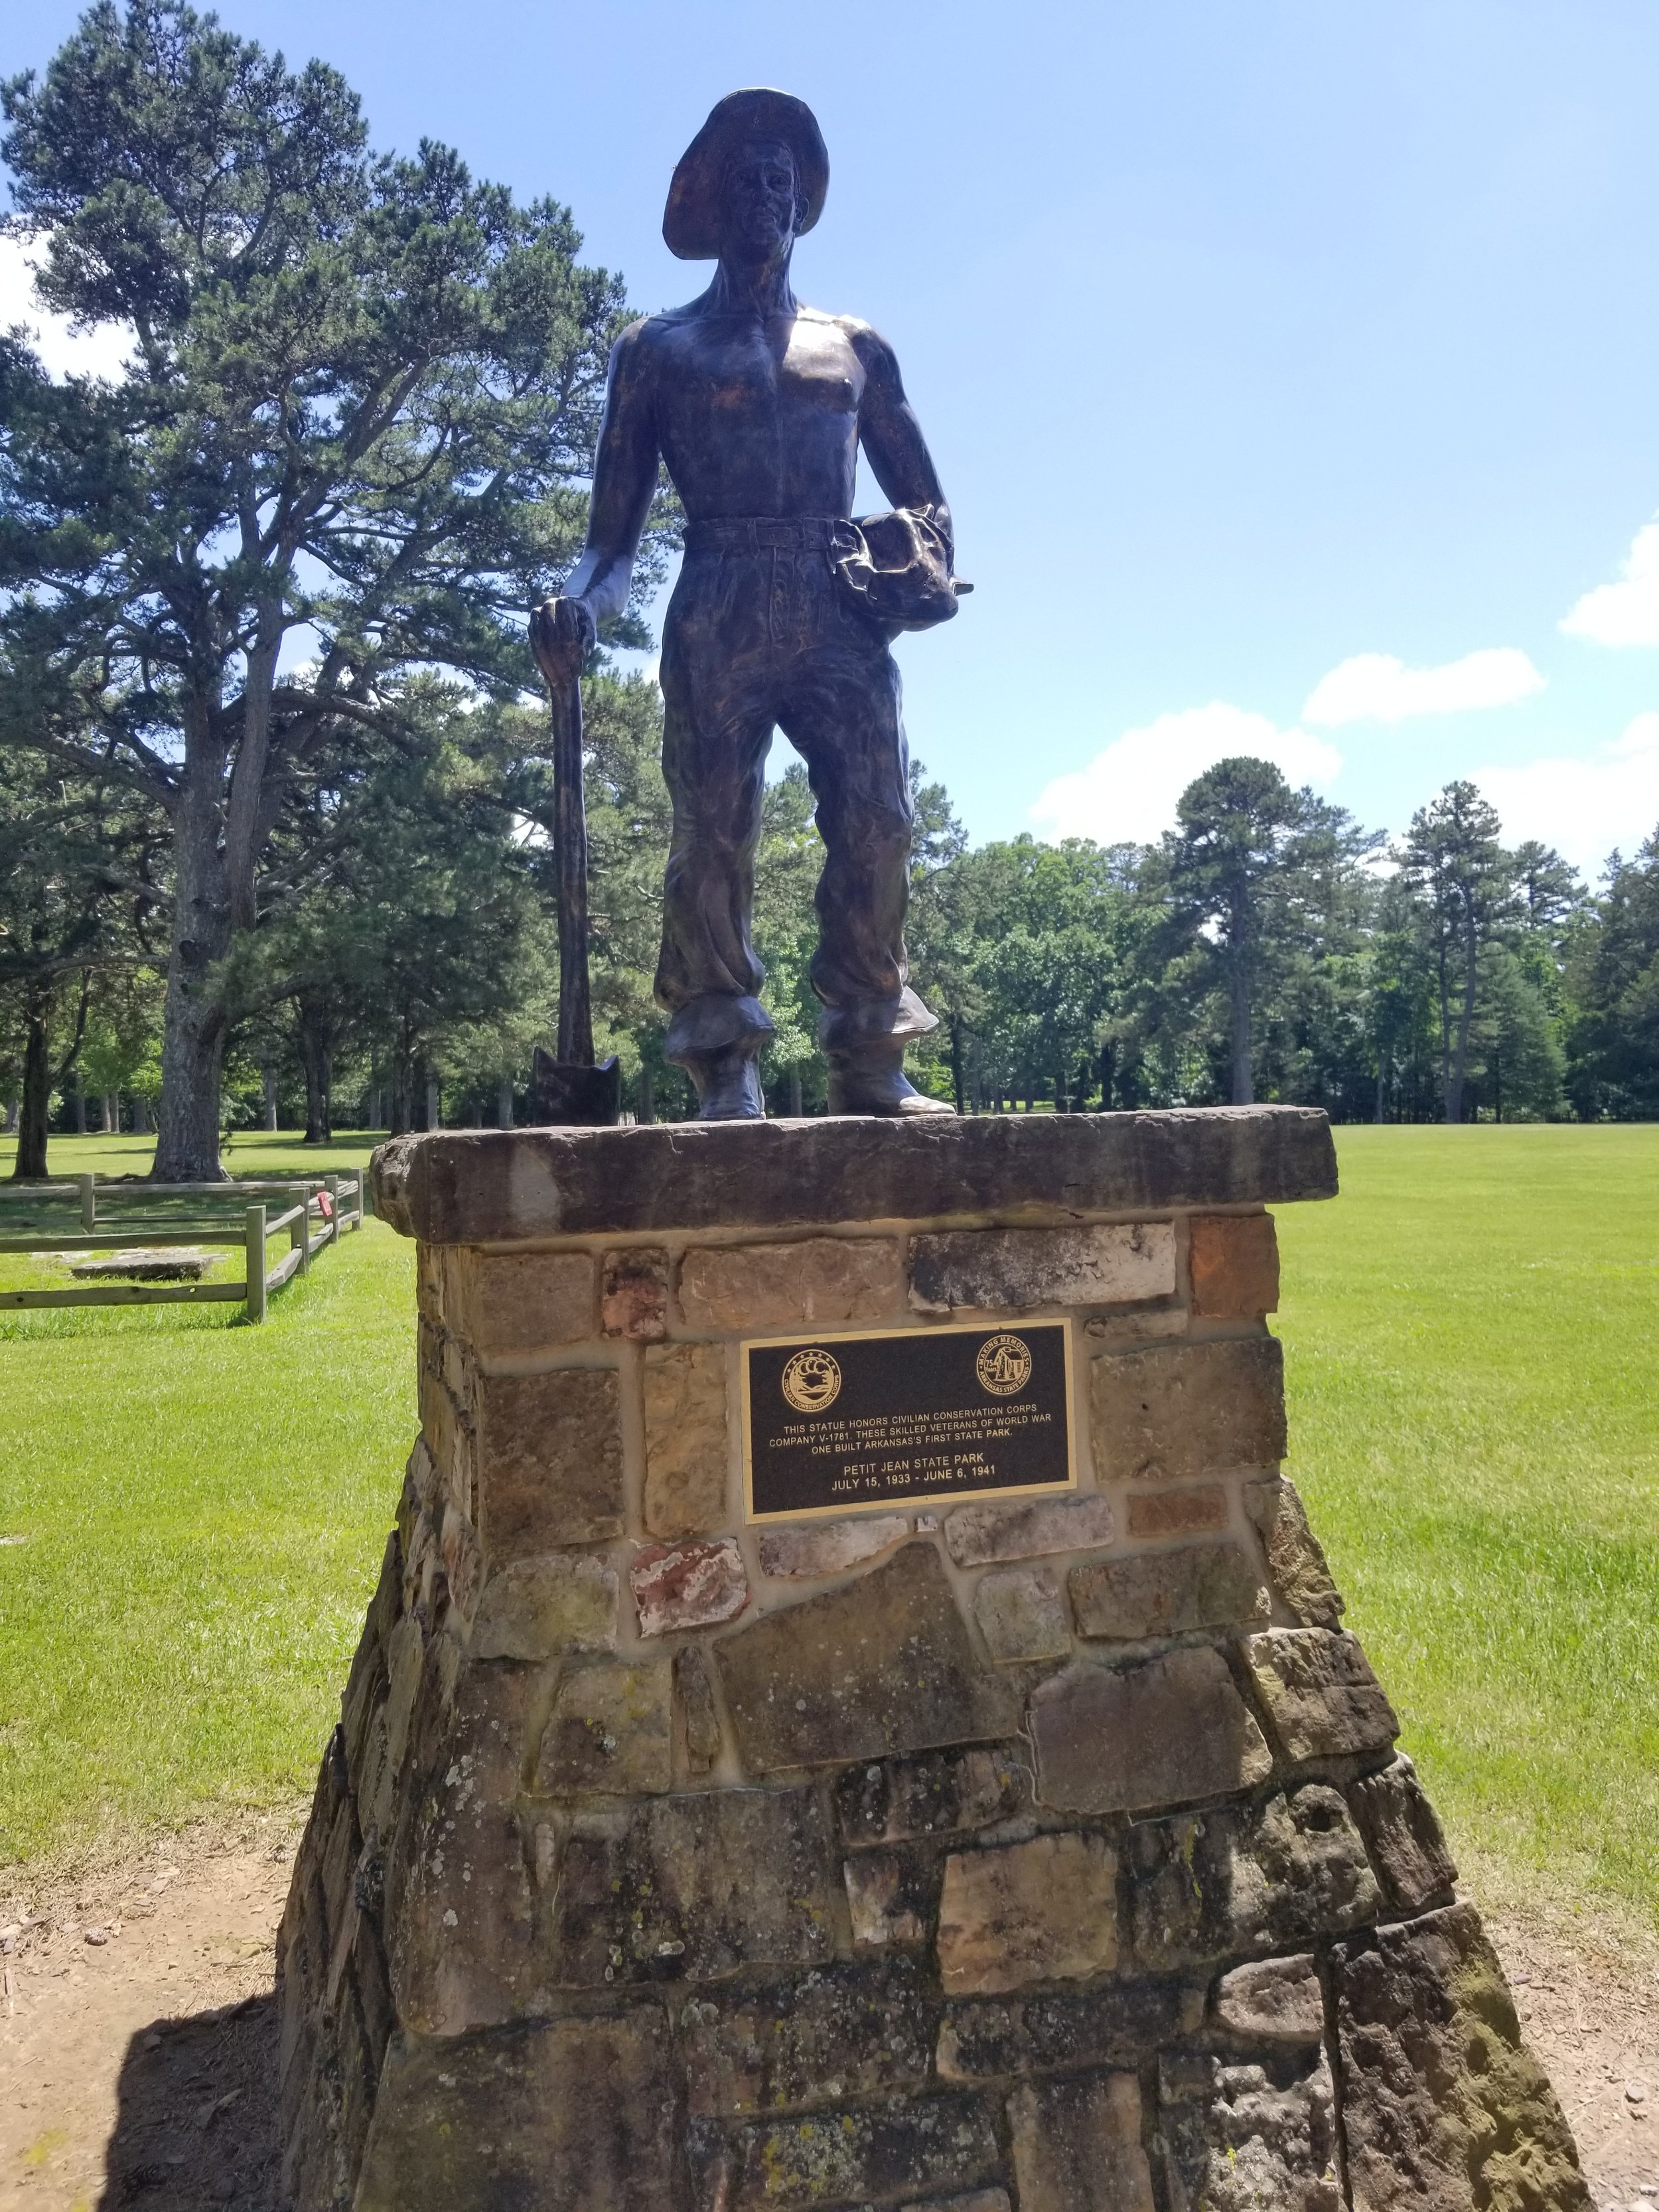 This statue honors Civilian Conversation Corps company V-1781. These skilled veterans of World War I built Petit Jean, Arkansas's first state park